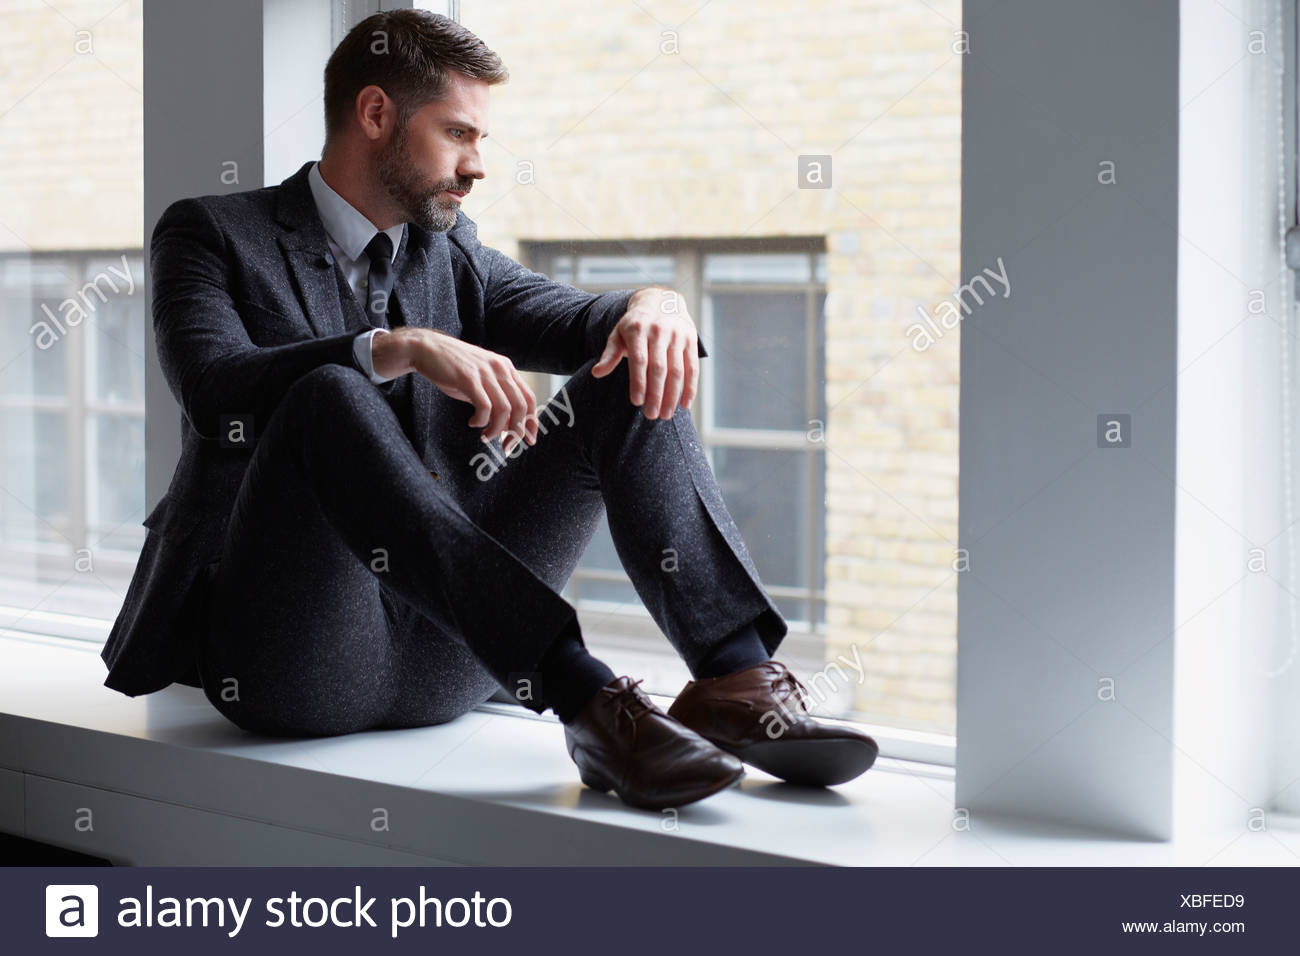 Portrait of businessman sitting on windowsill looking out of window - Stock Image